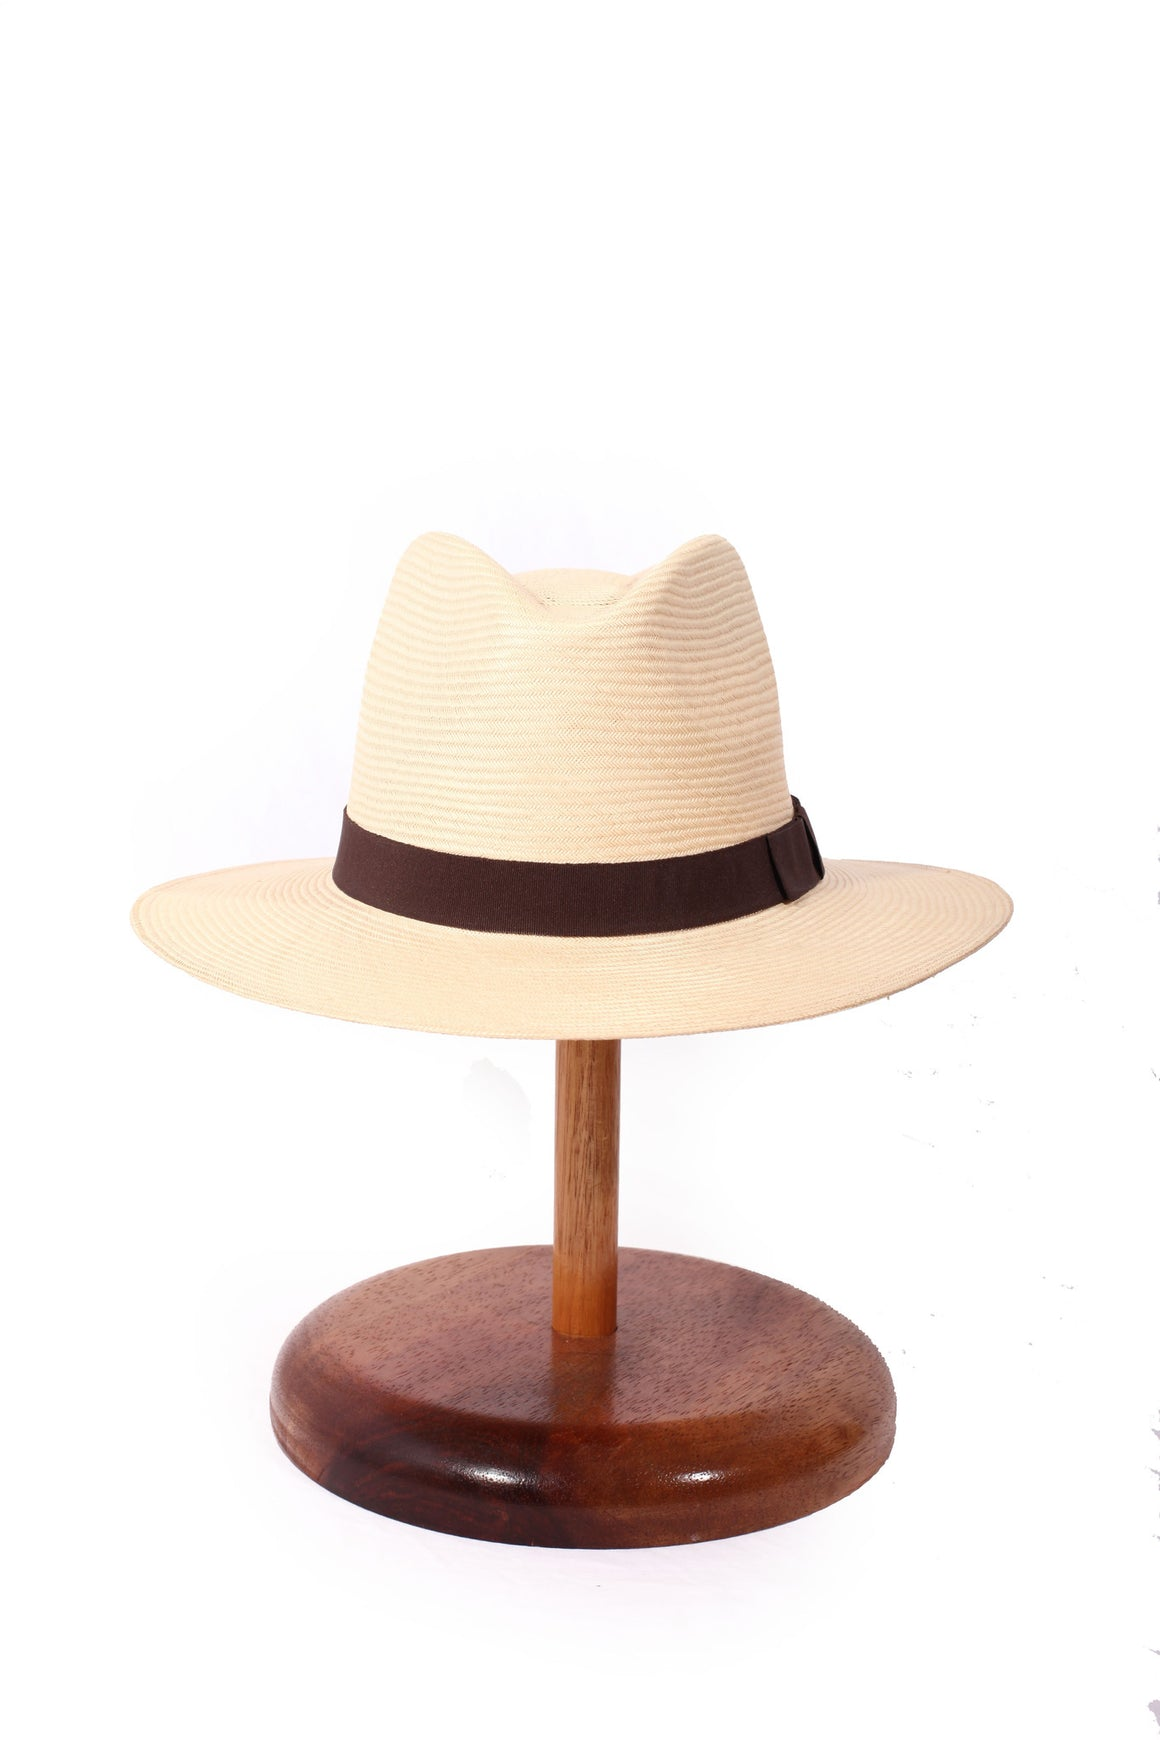 Maya Neumann Panama Style Hat - Brown Ribbon  (Limited stock, please enquire before purchasing)